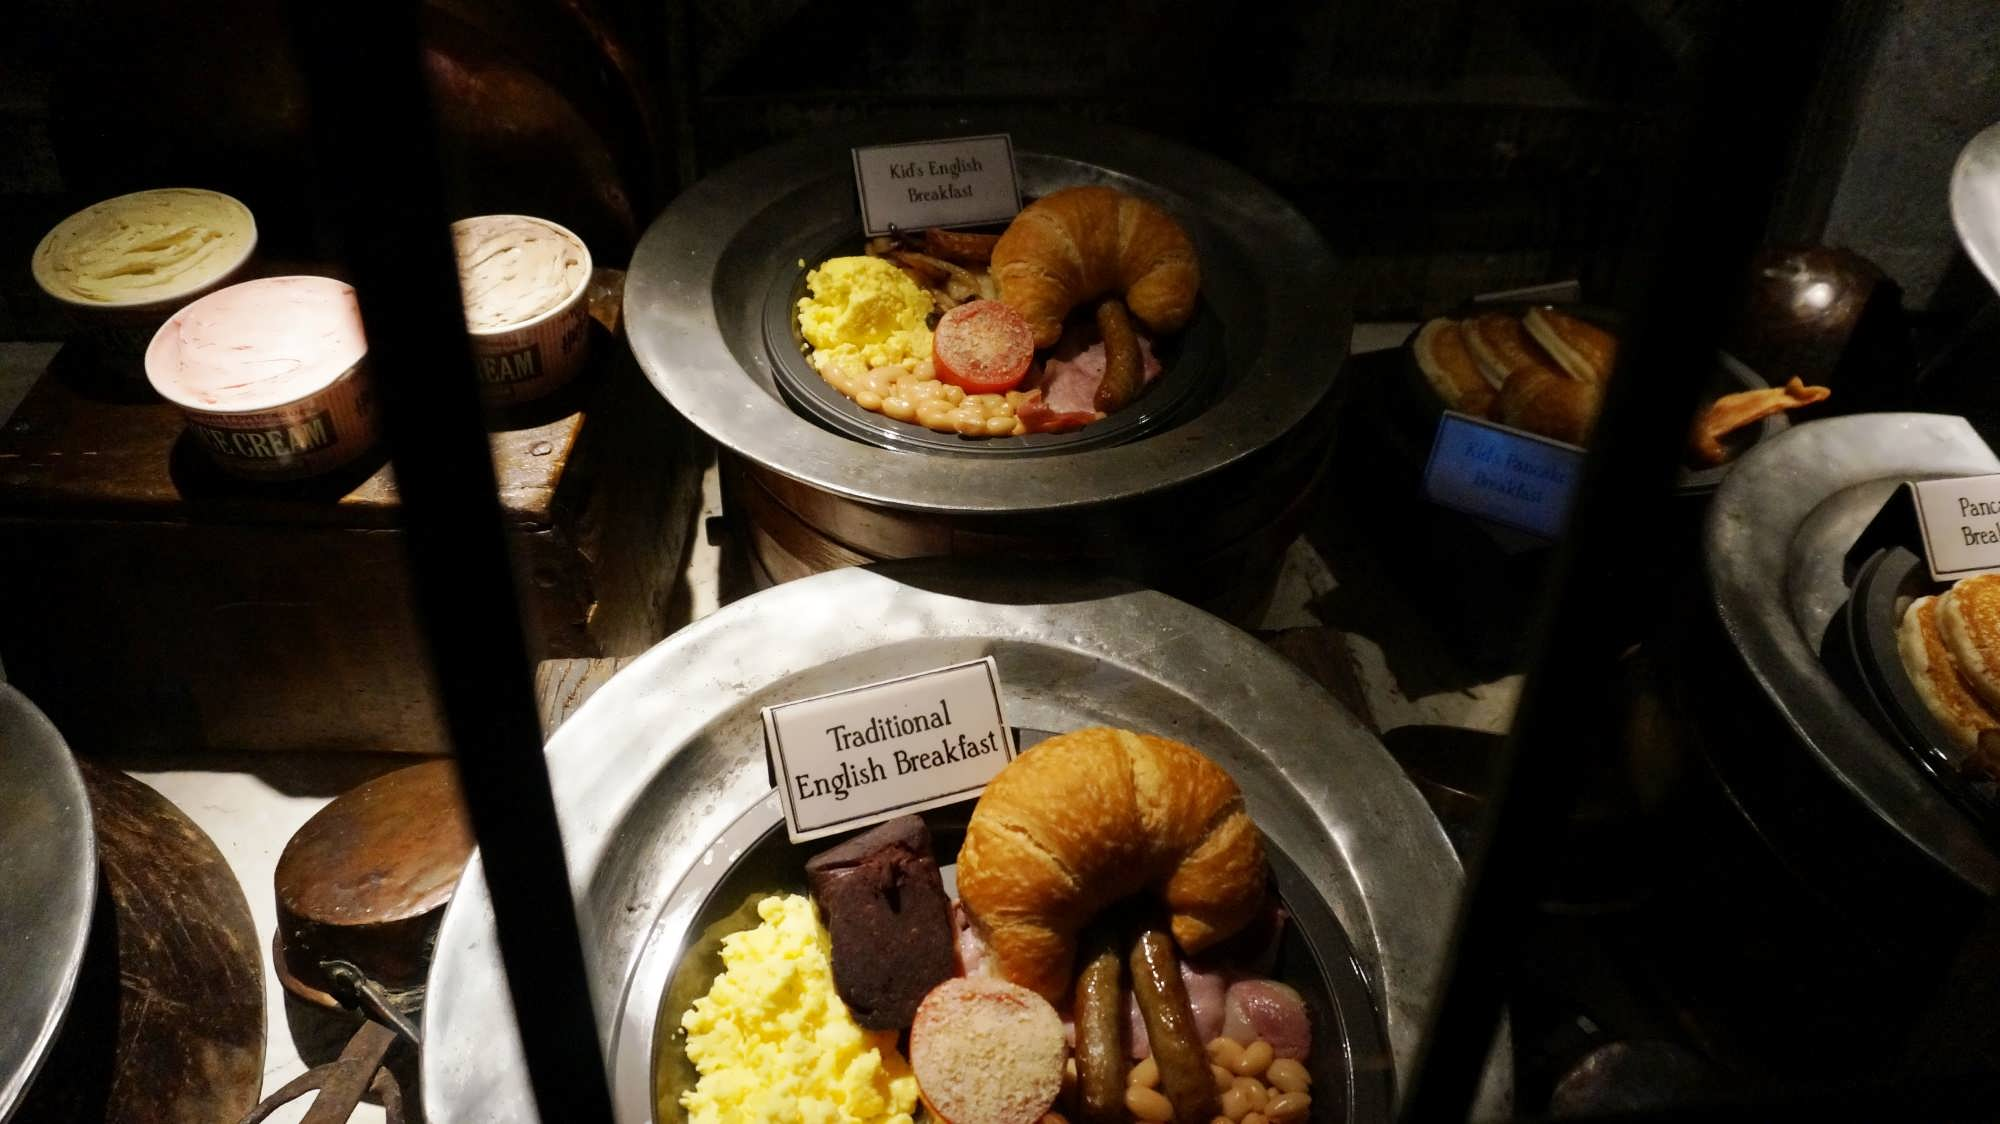 Breakfast at Three Broomsticks.